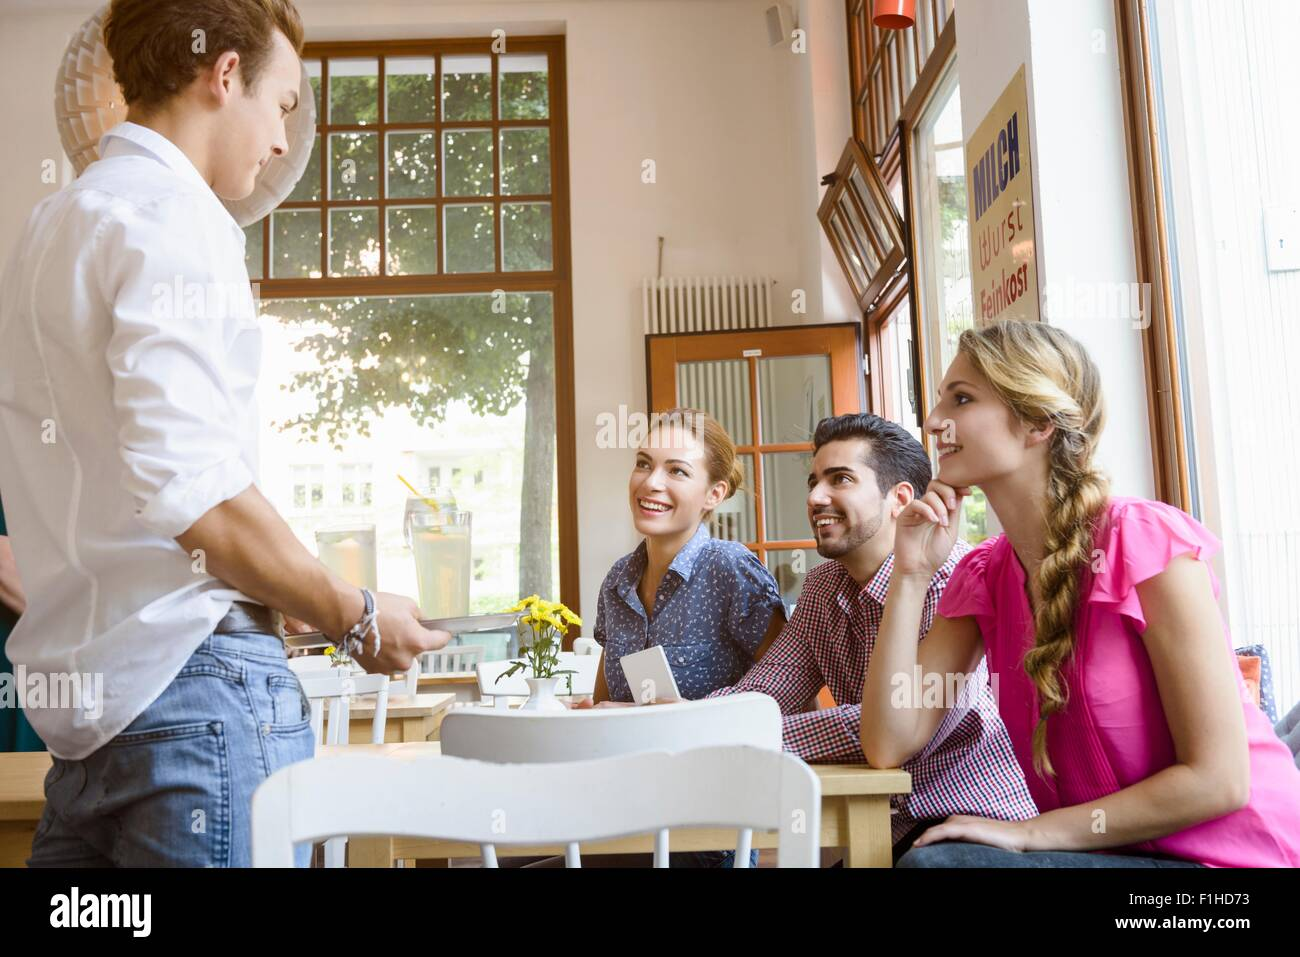 Afin de Waiter taking young adult friends in cafe Photo Stock